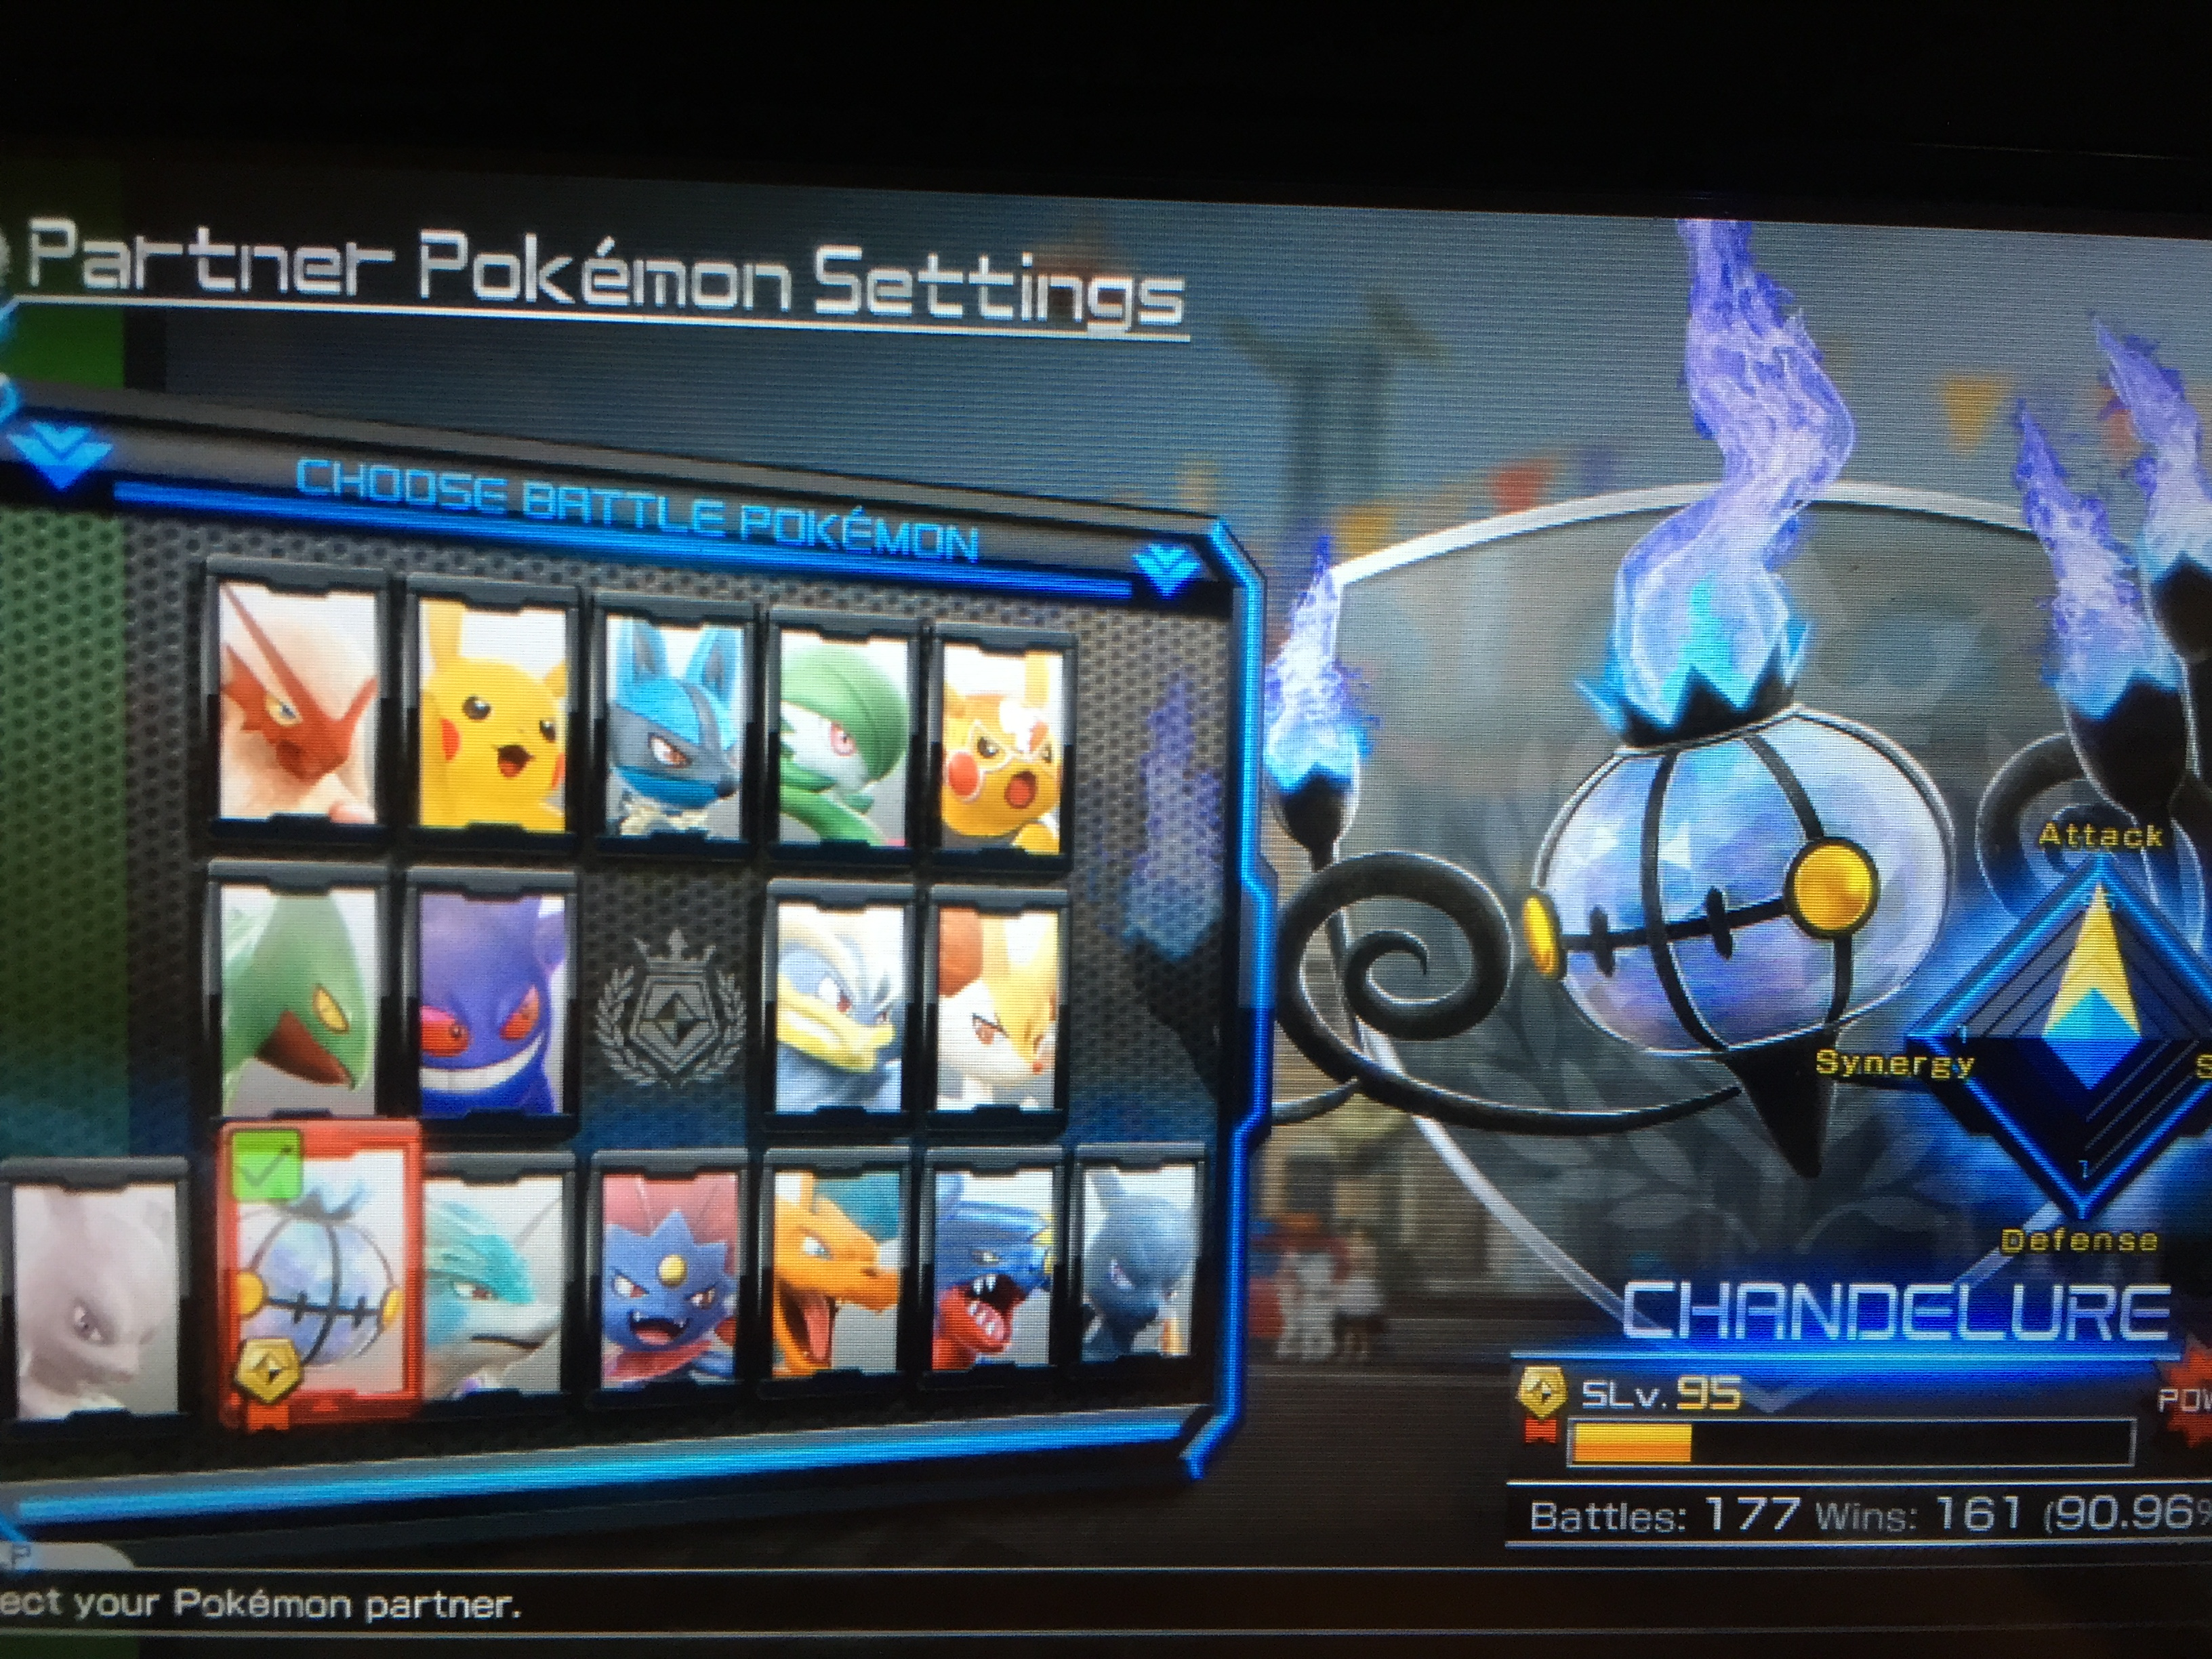 The (lacking) Pokkén roster: Blaziken, Pikachu, Lucario, Gardevoir, Pikachu Libre, Sceptile, Gengar, Machamp, Braixen, Mewtwo, Chandelure, Suicune, Weavile, Charizard, Garchomp, and Shadow Mewtwo.